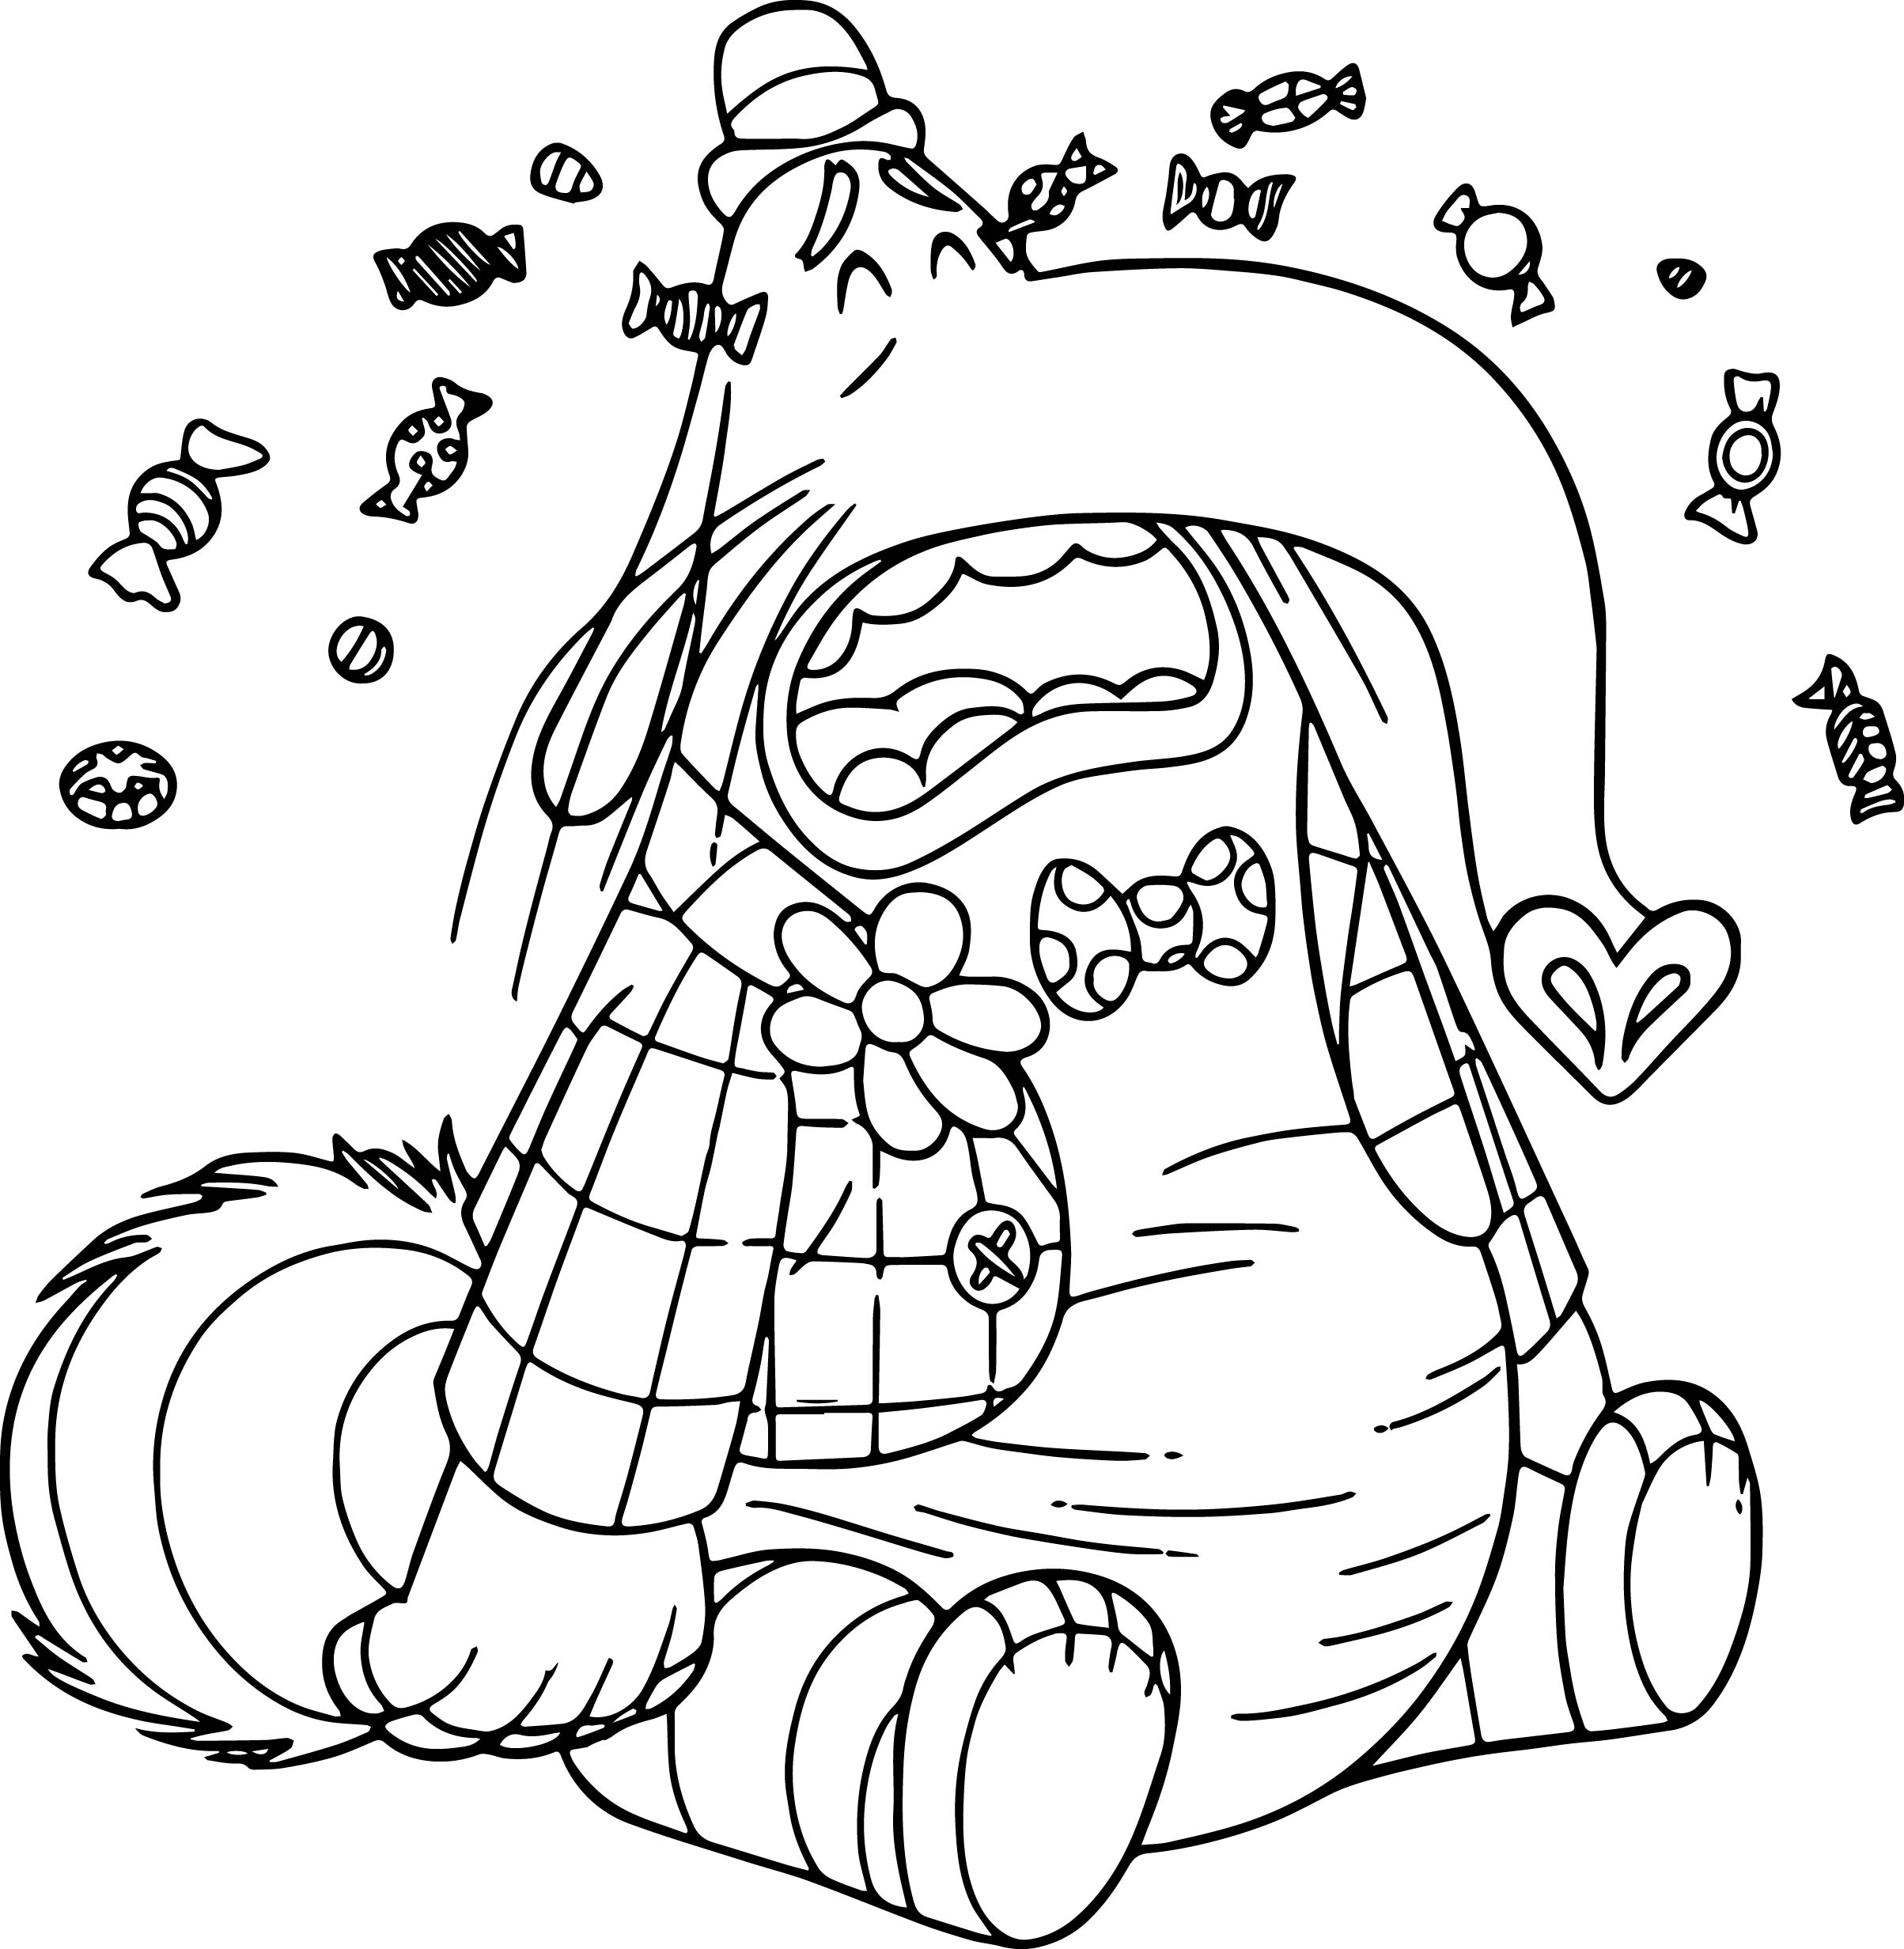 bong coloring pages bingbong cry coloring pages